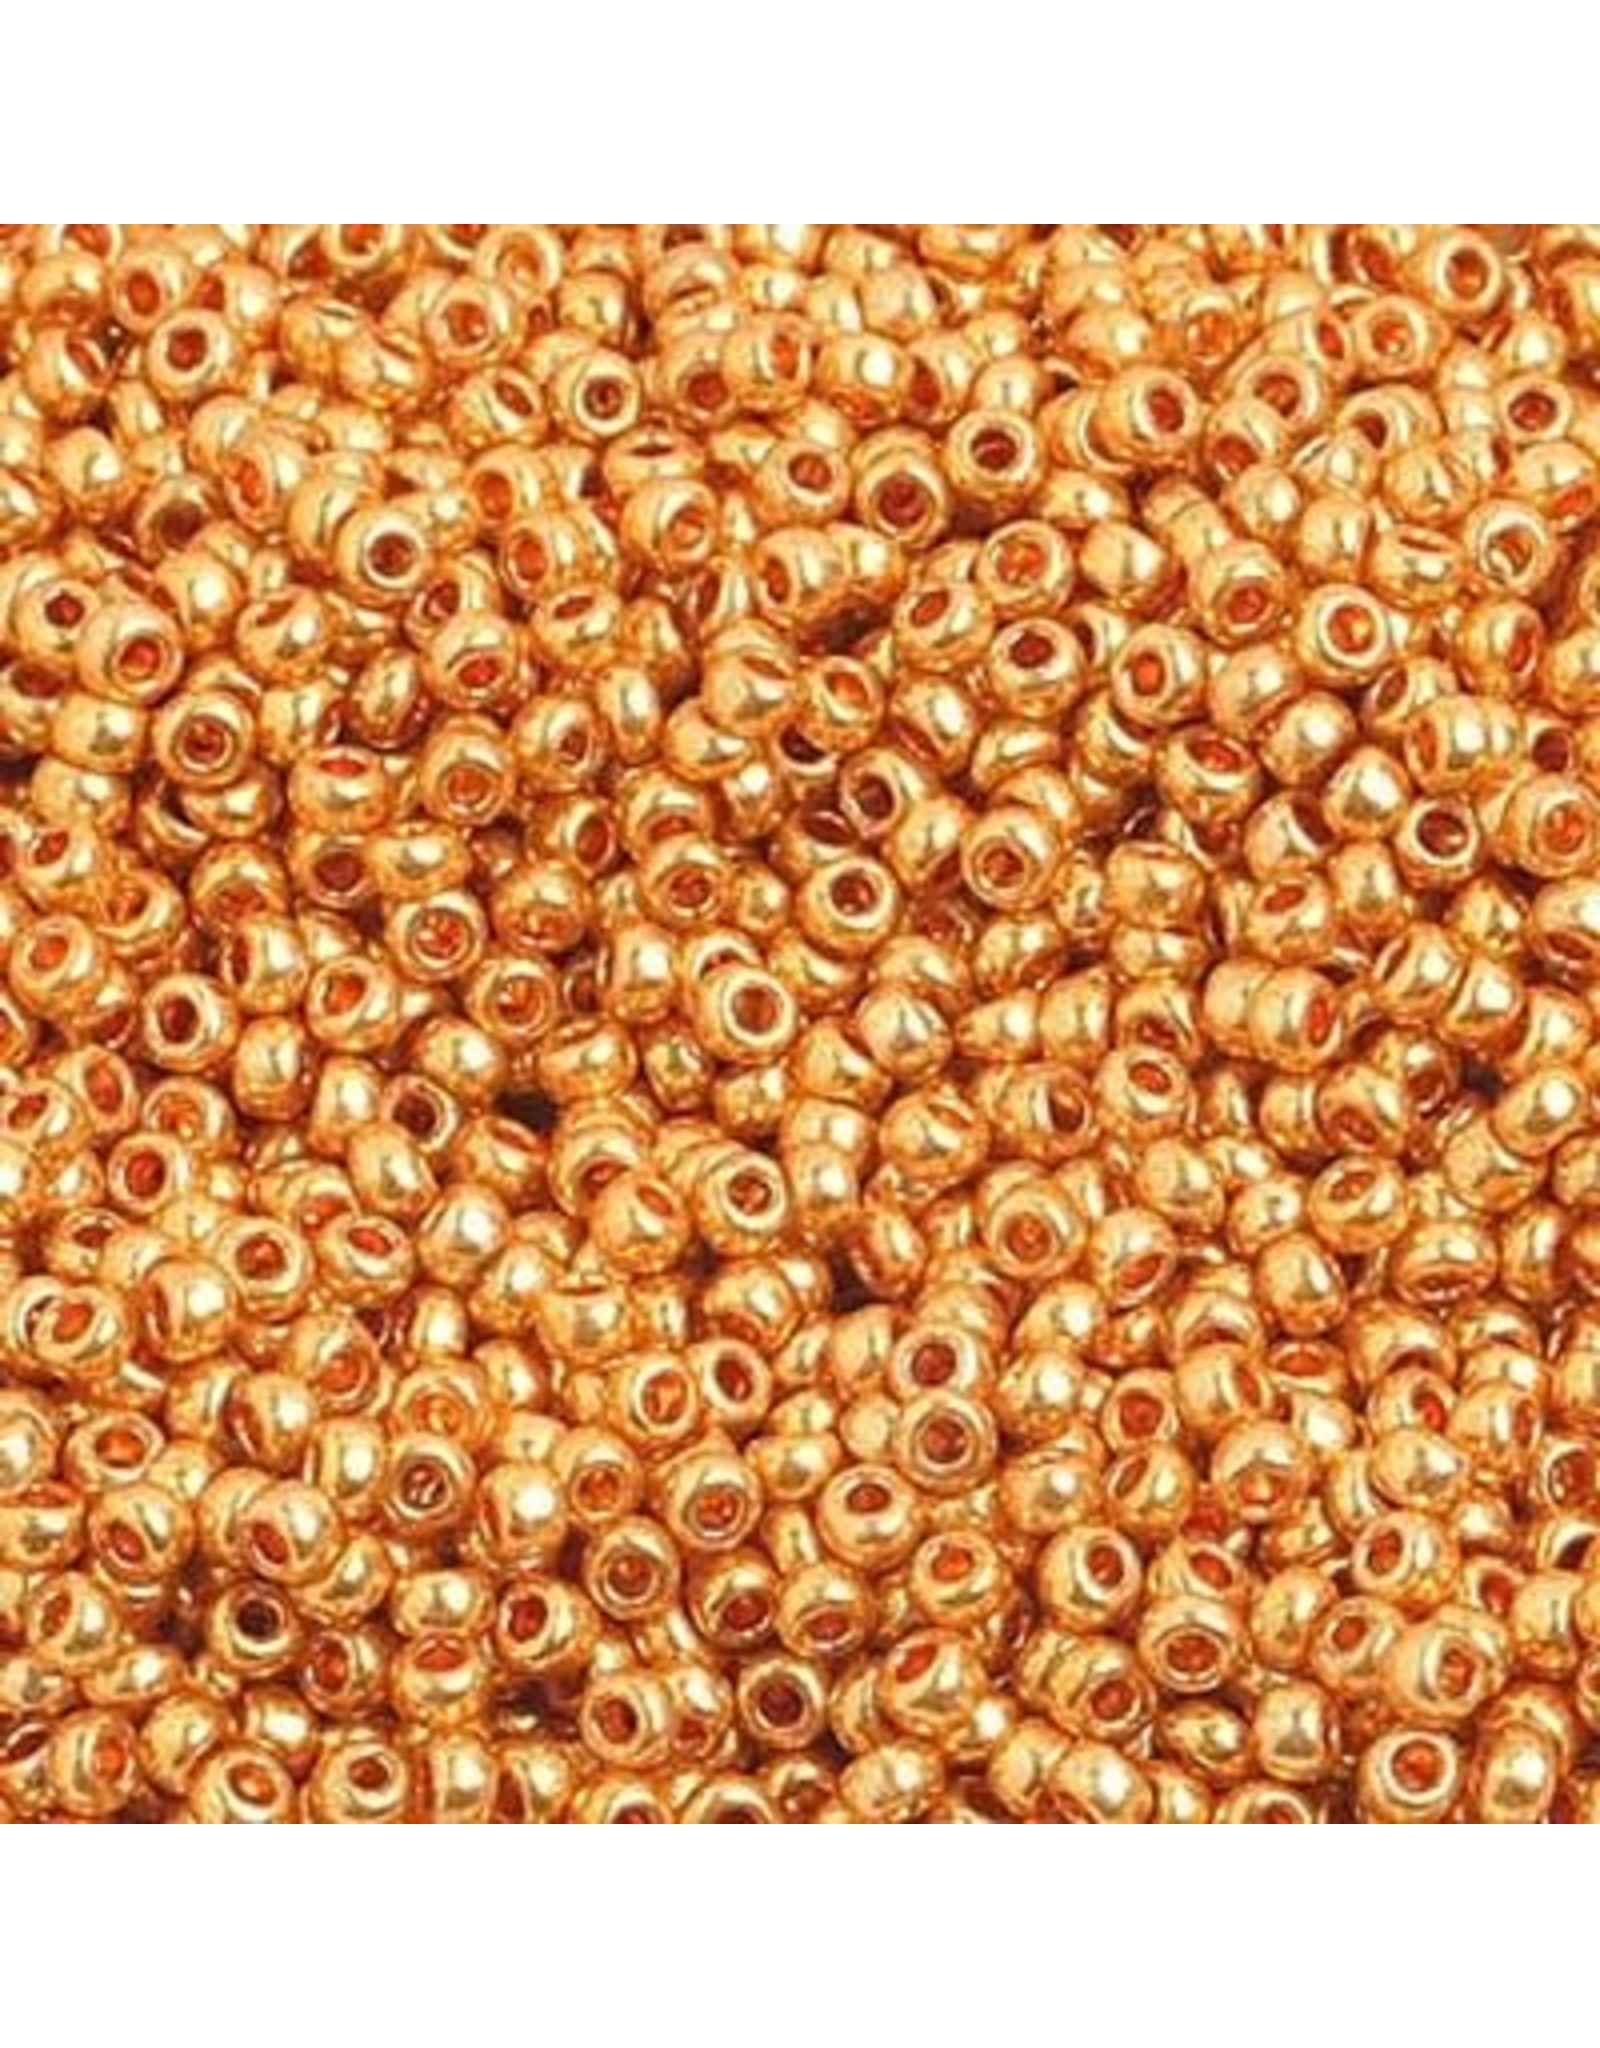 Czech 1504B 10 Czech Seed 250g Gold Metallic